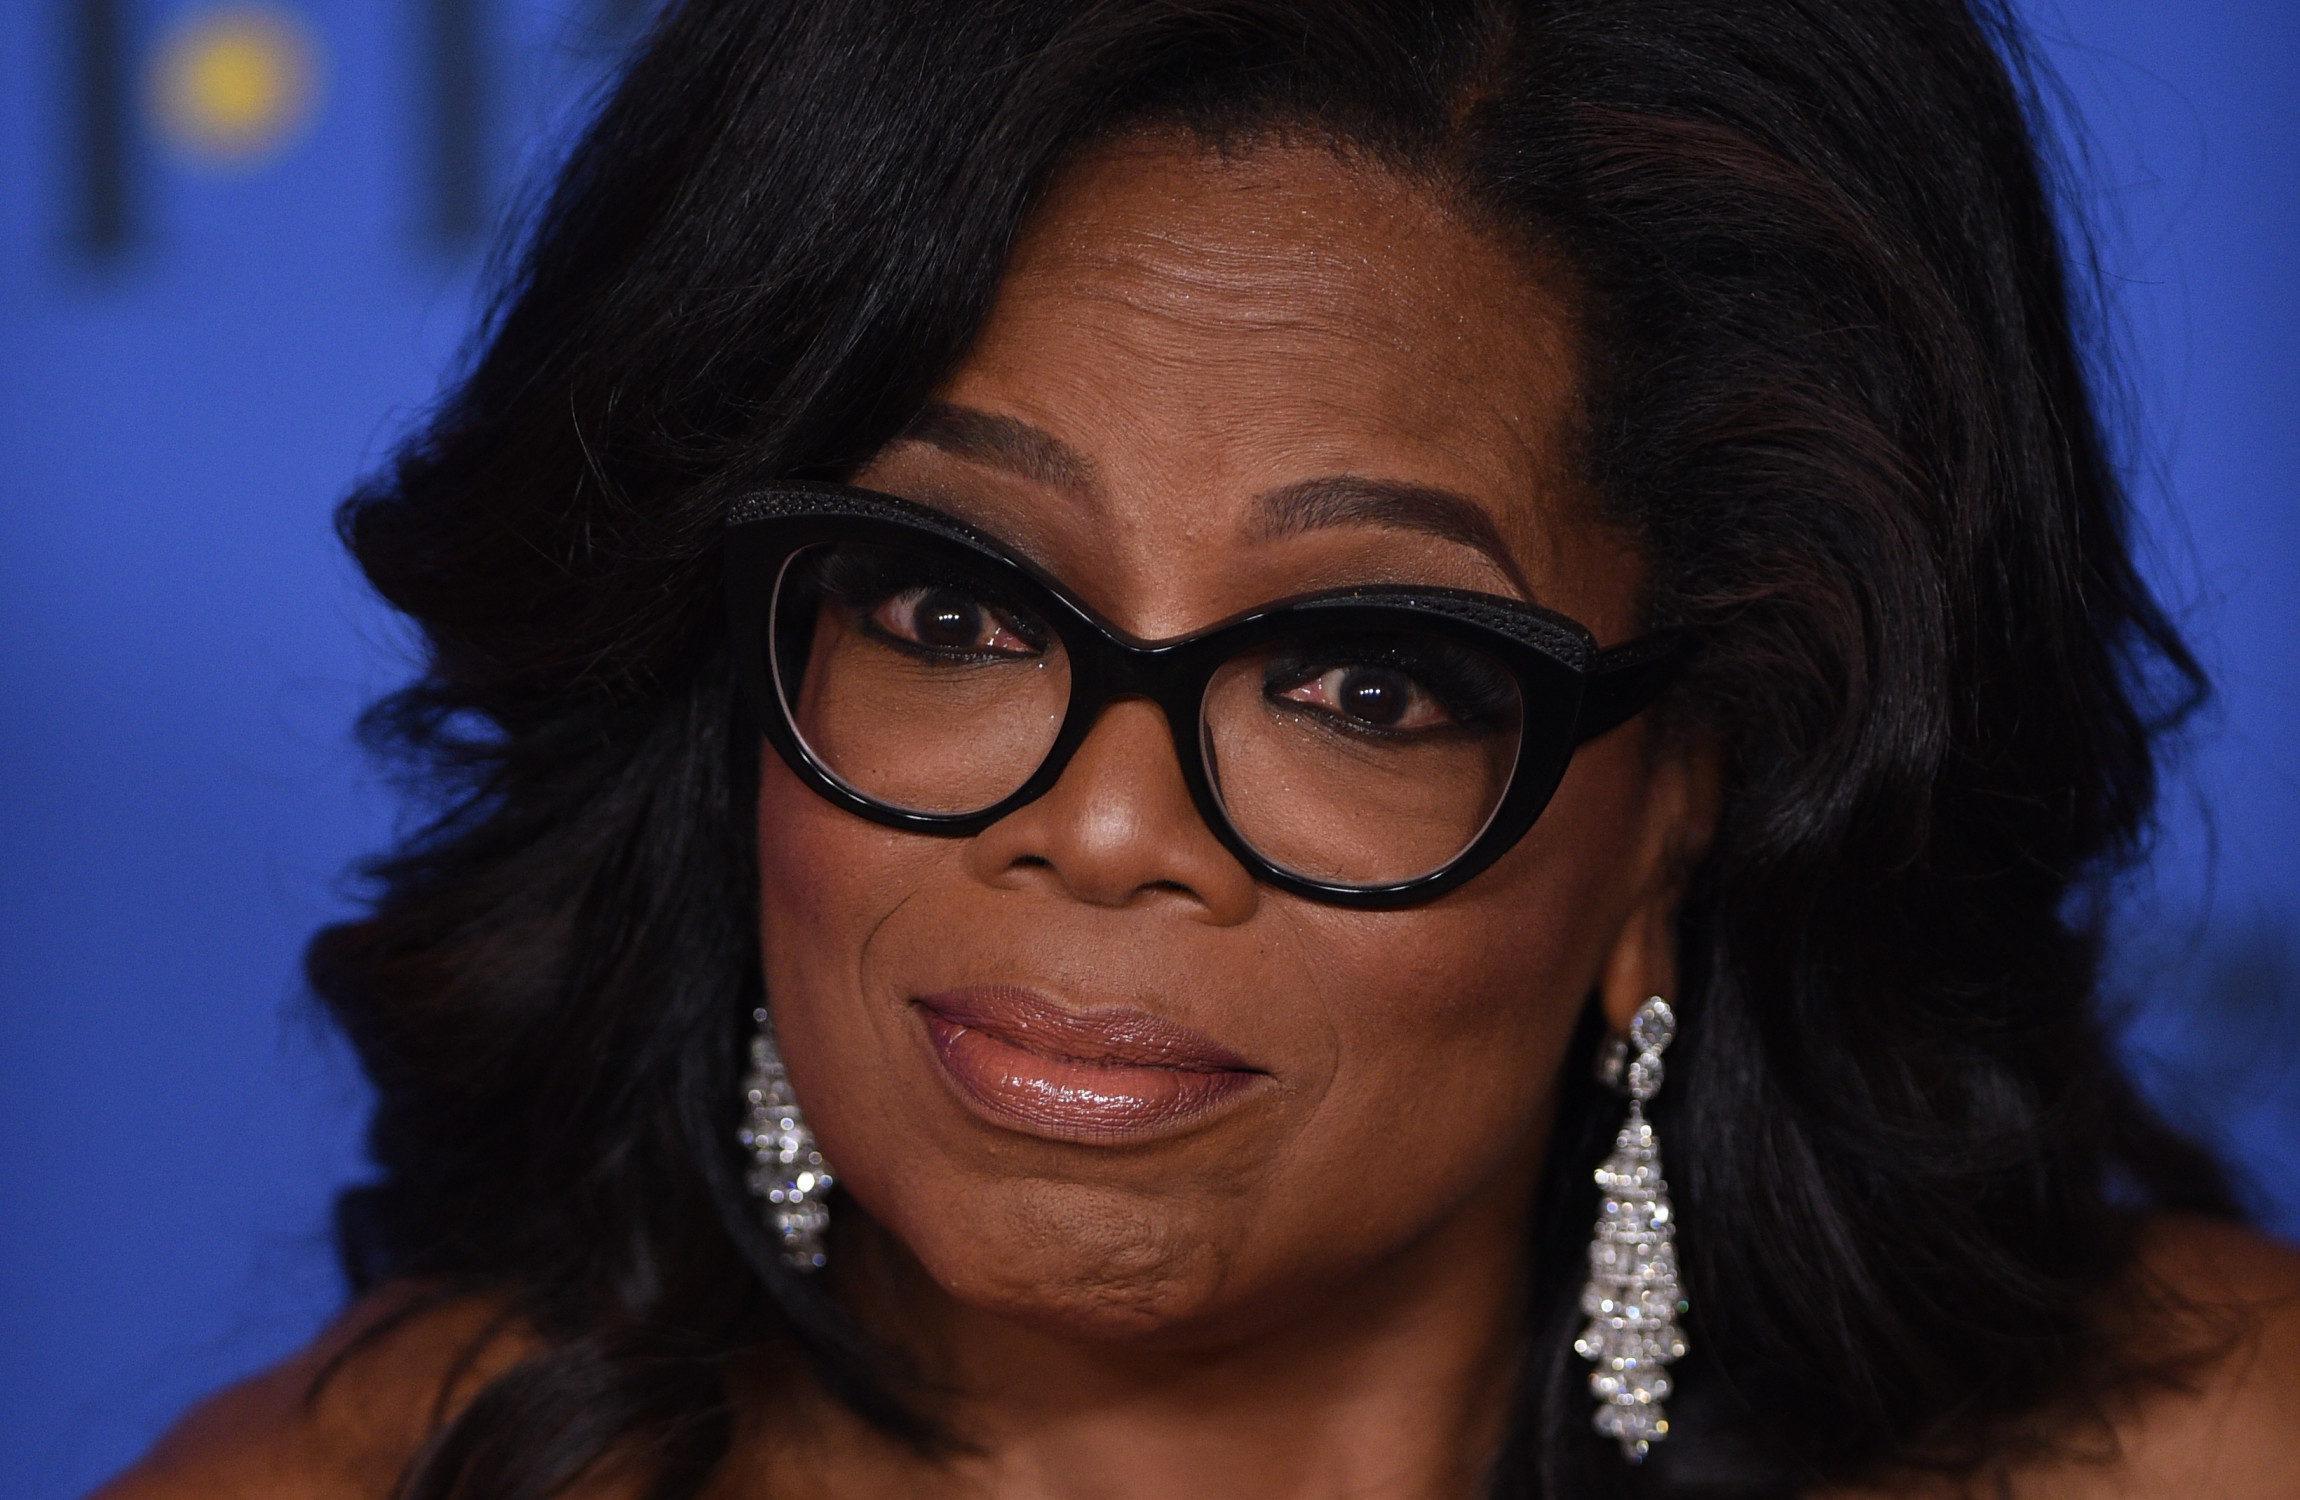 Did Oprah Winfrey Say She Brought Young Women to Harvey Weinstein's House?